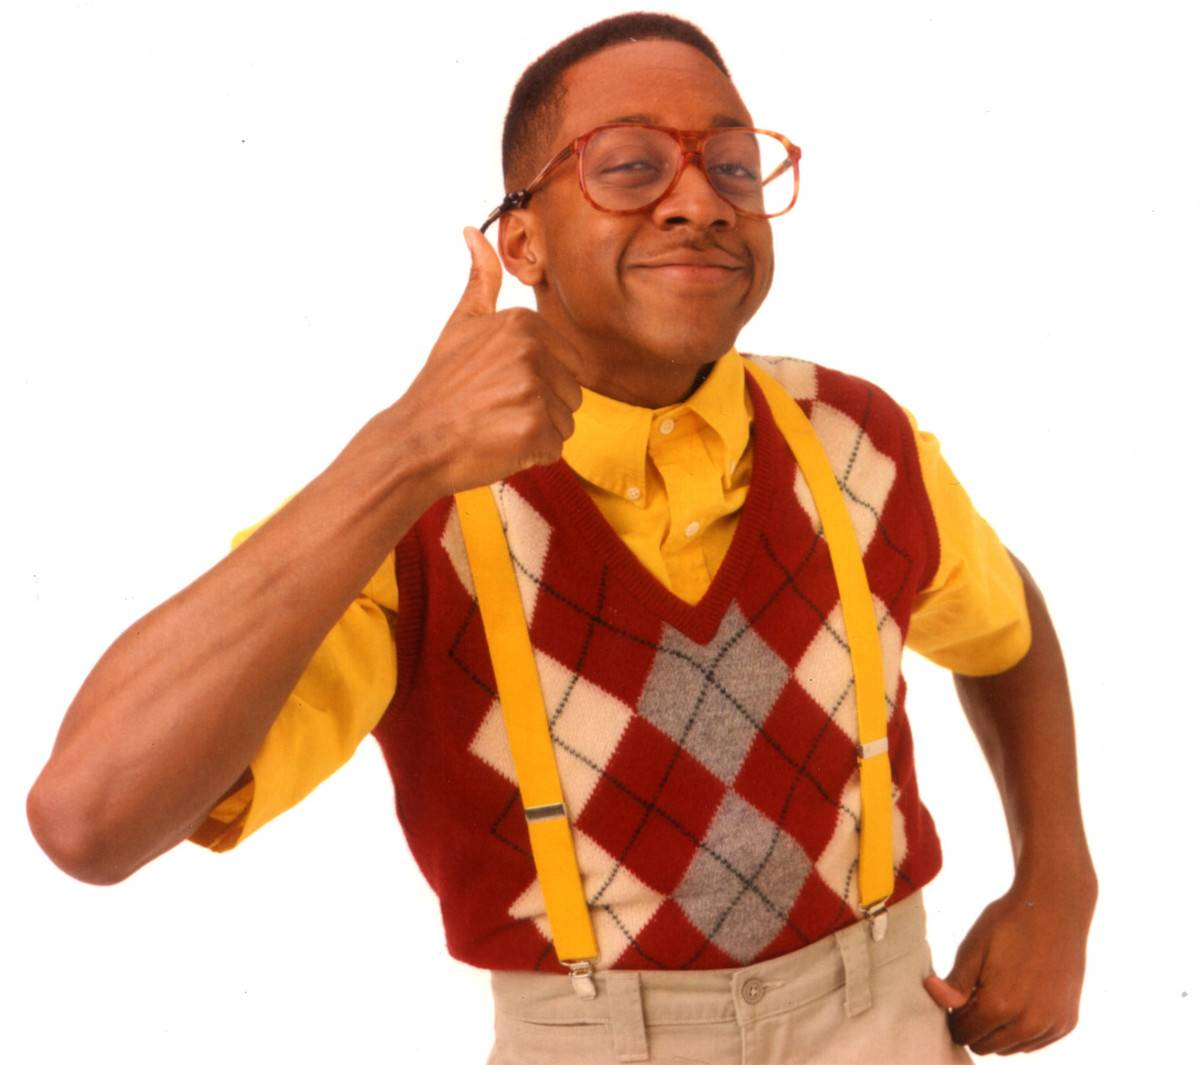 promo shot of urkel giving thumbs up